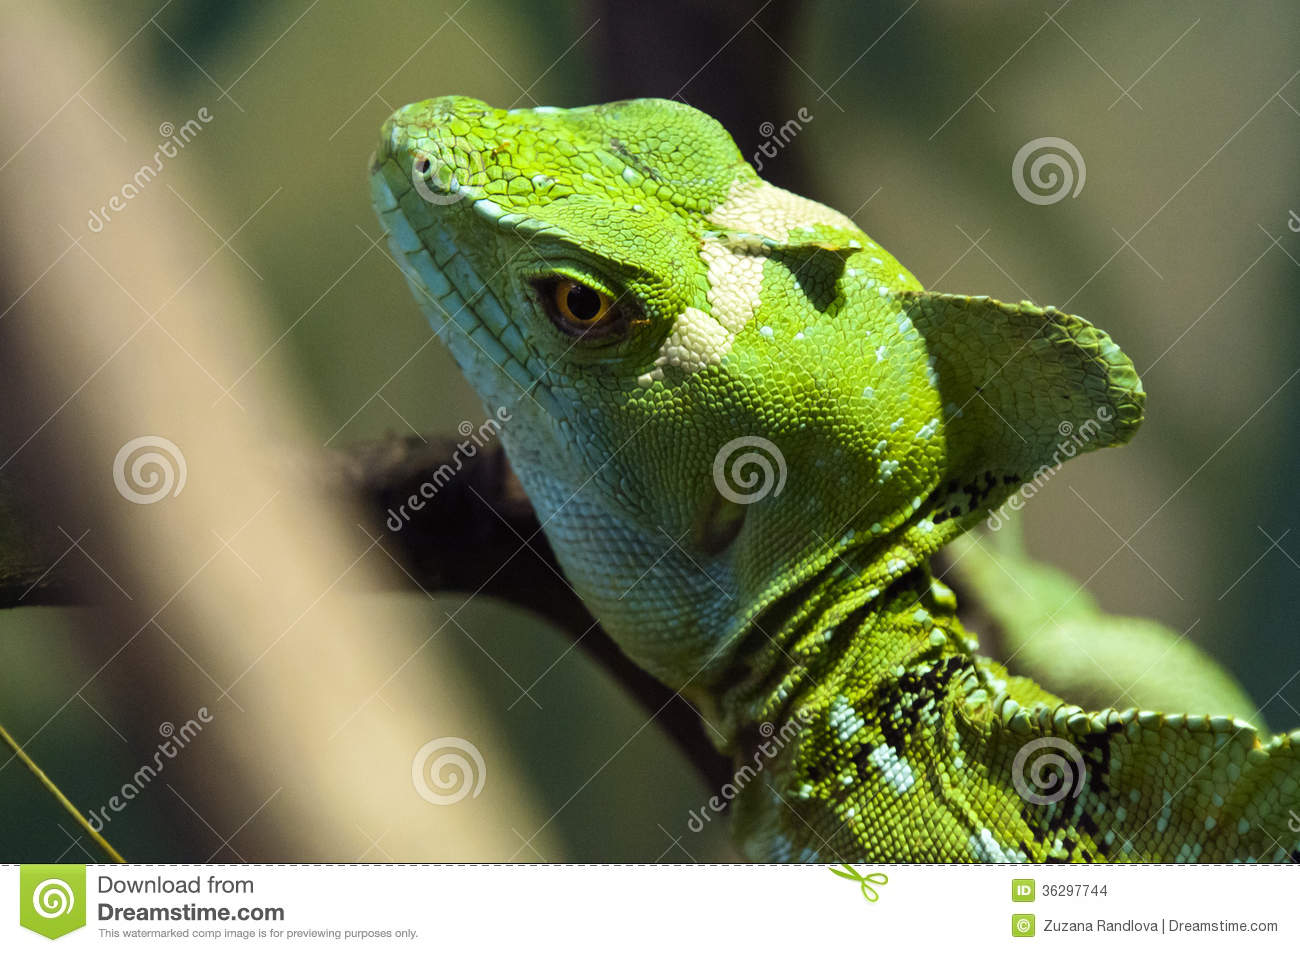 Plumed Basilisk Stock Images - Image: 36297744